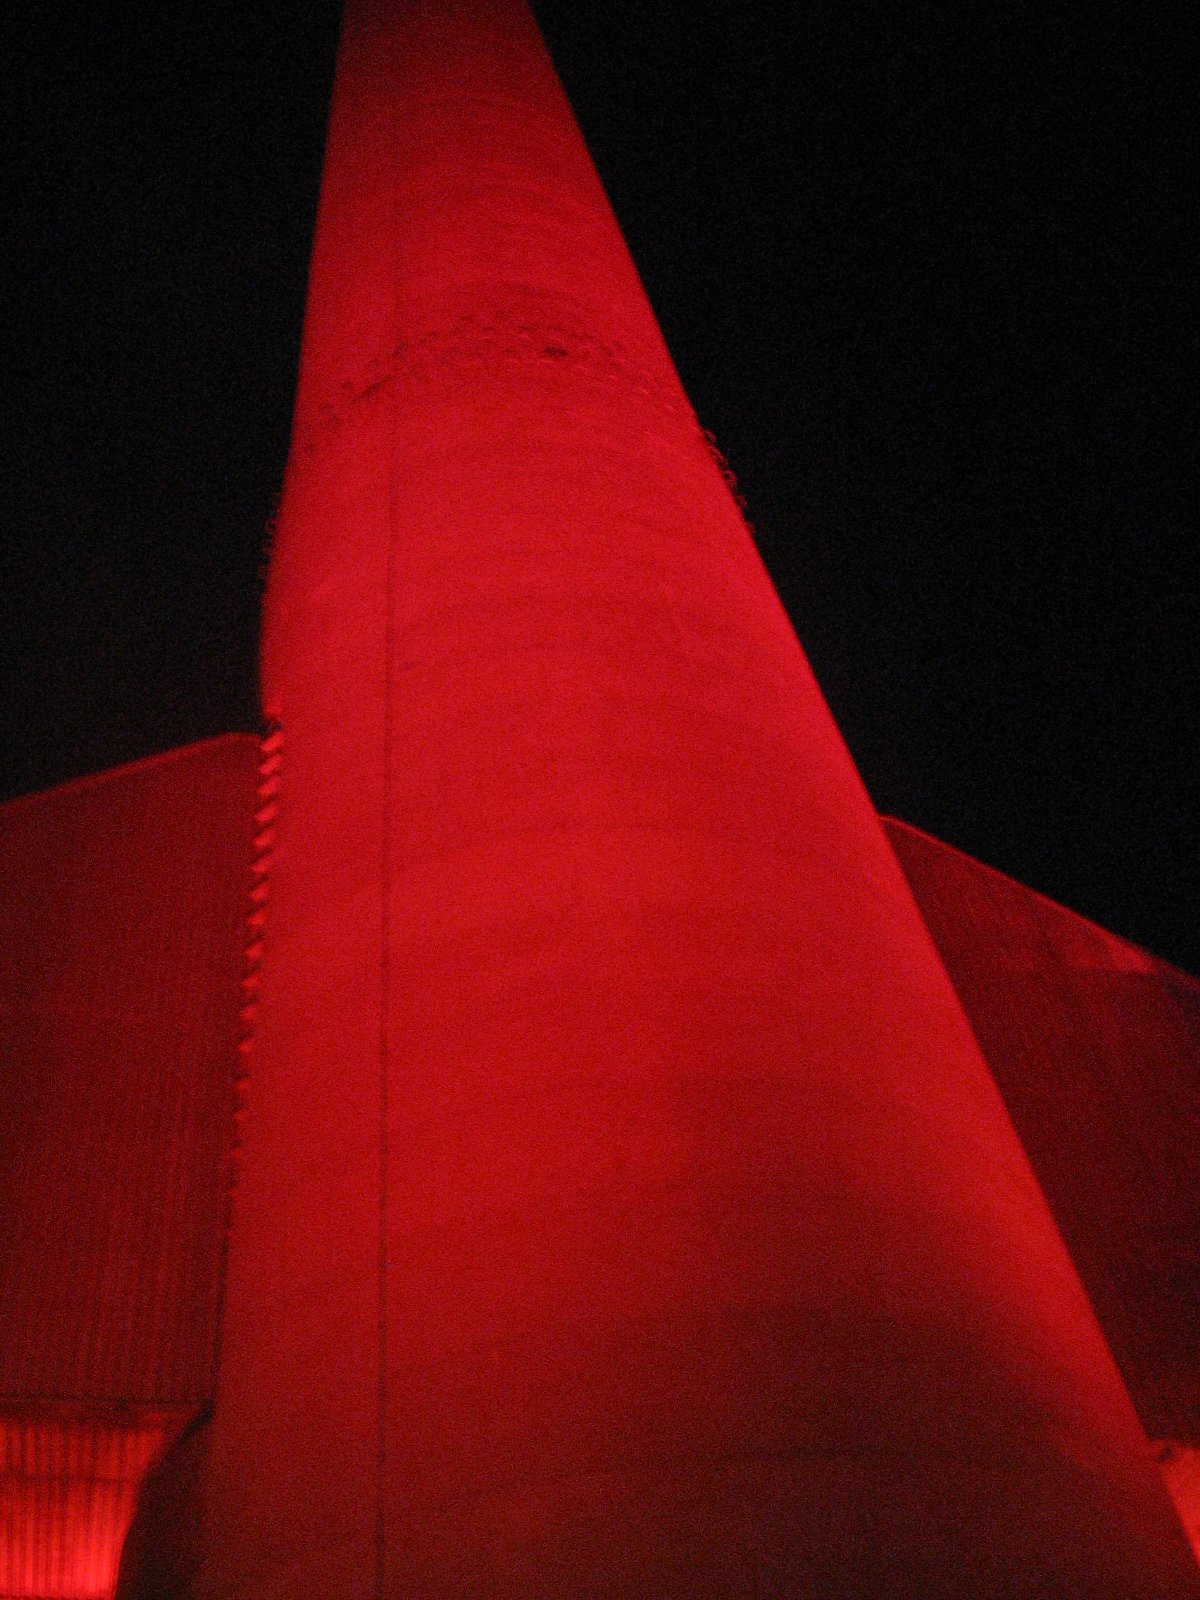 Cockenzie Powerstation